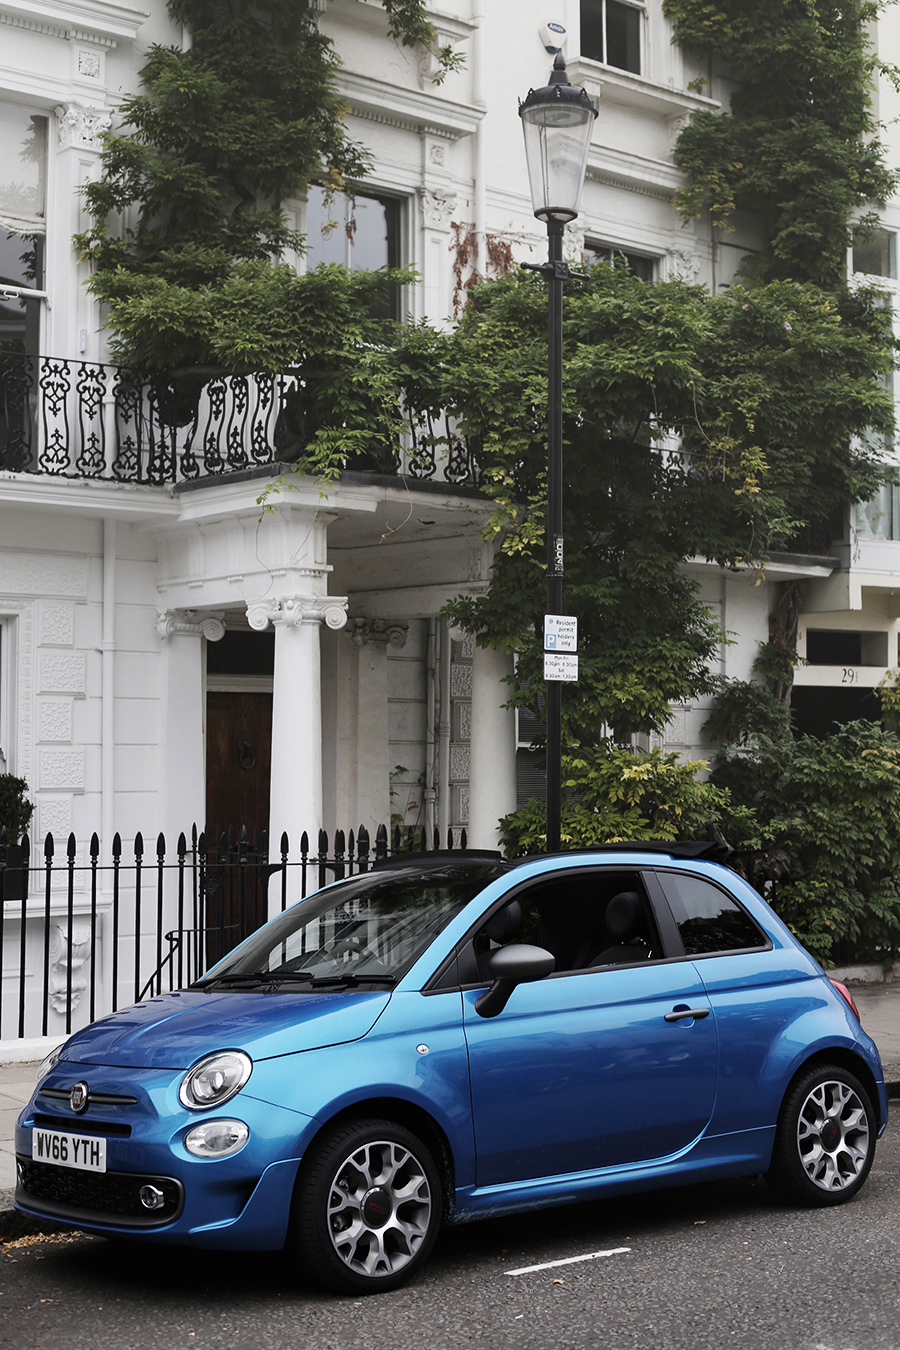 Why The Fiat 500 is the perfect city car